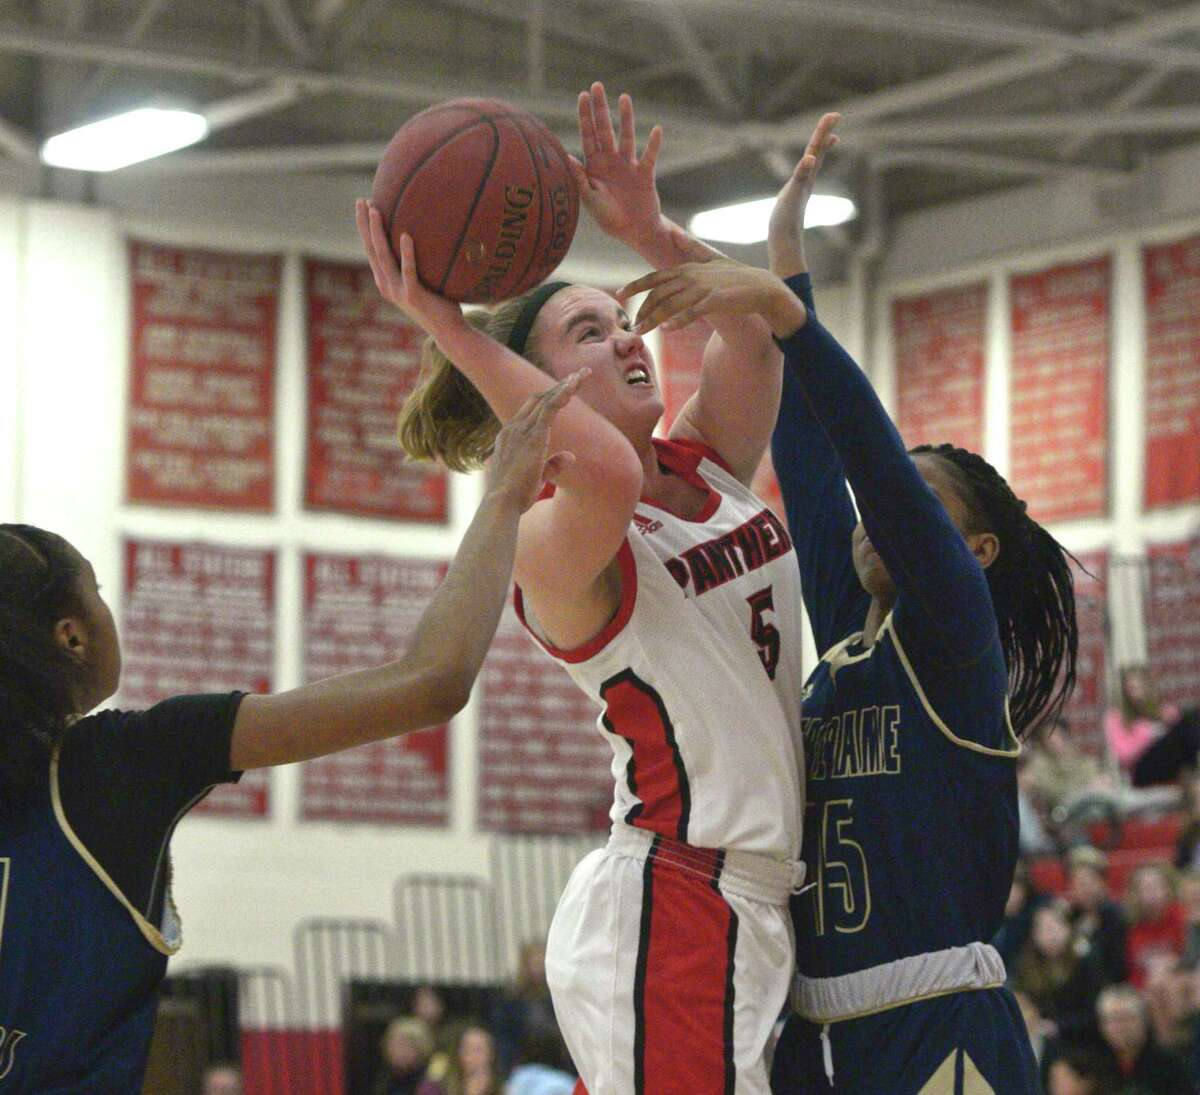 Pomperaug's Molly Flanagan (5) drives to the basket between Notre Dame-Fairfield teammates Kayla Tilus (11) and Ciara Brown (15) in the girls basketball game on Friday night at Pomberaug High School in Southbury.